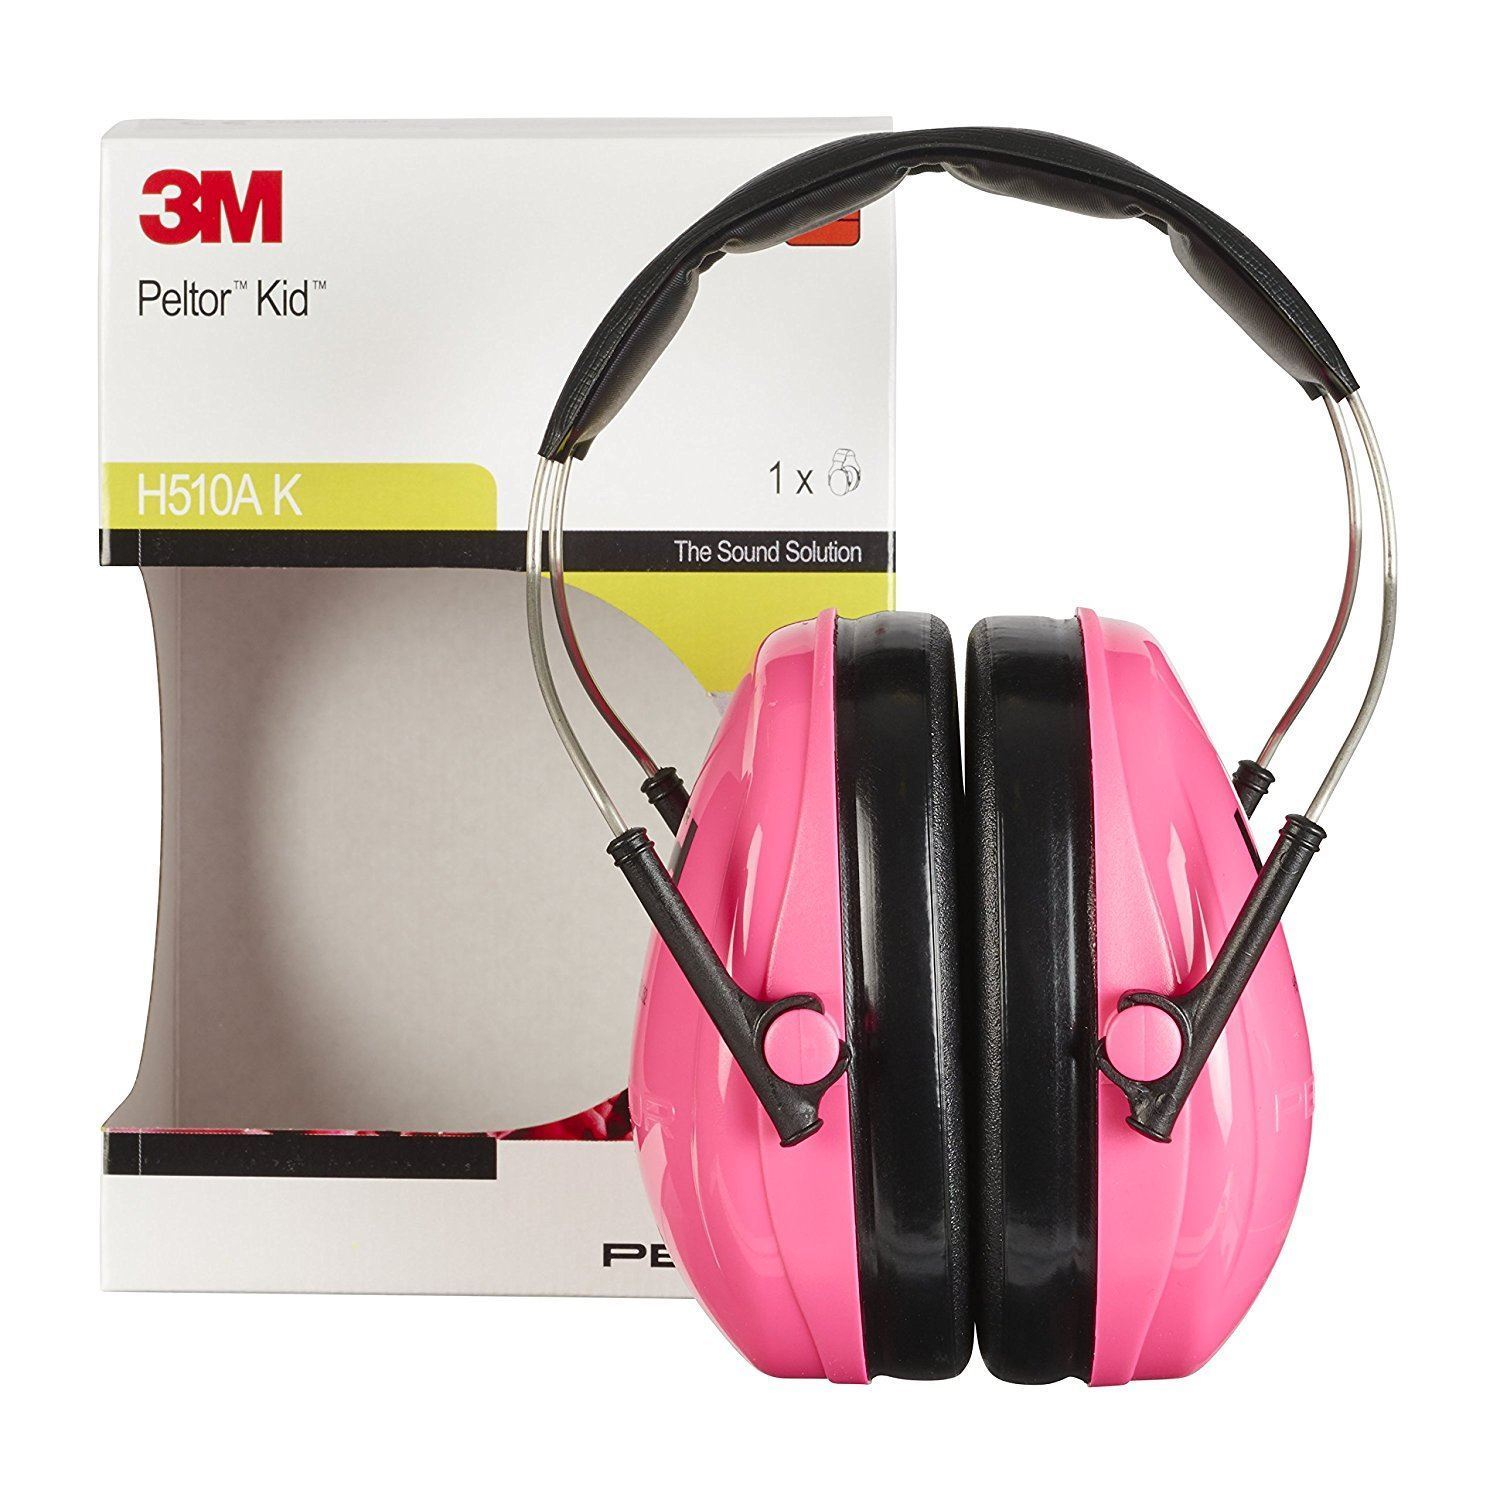 3M Peltor H510AK 442-RE Kid Earmuffs with Headband Ear Defender with Comfortable Wear for Children Neon Yellow/Green - reid outdoors